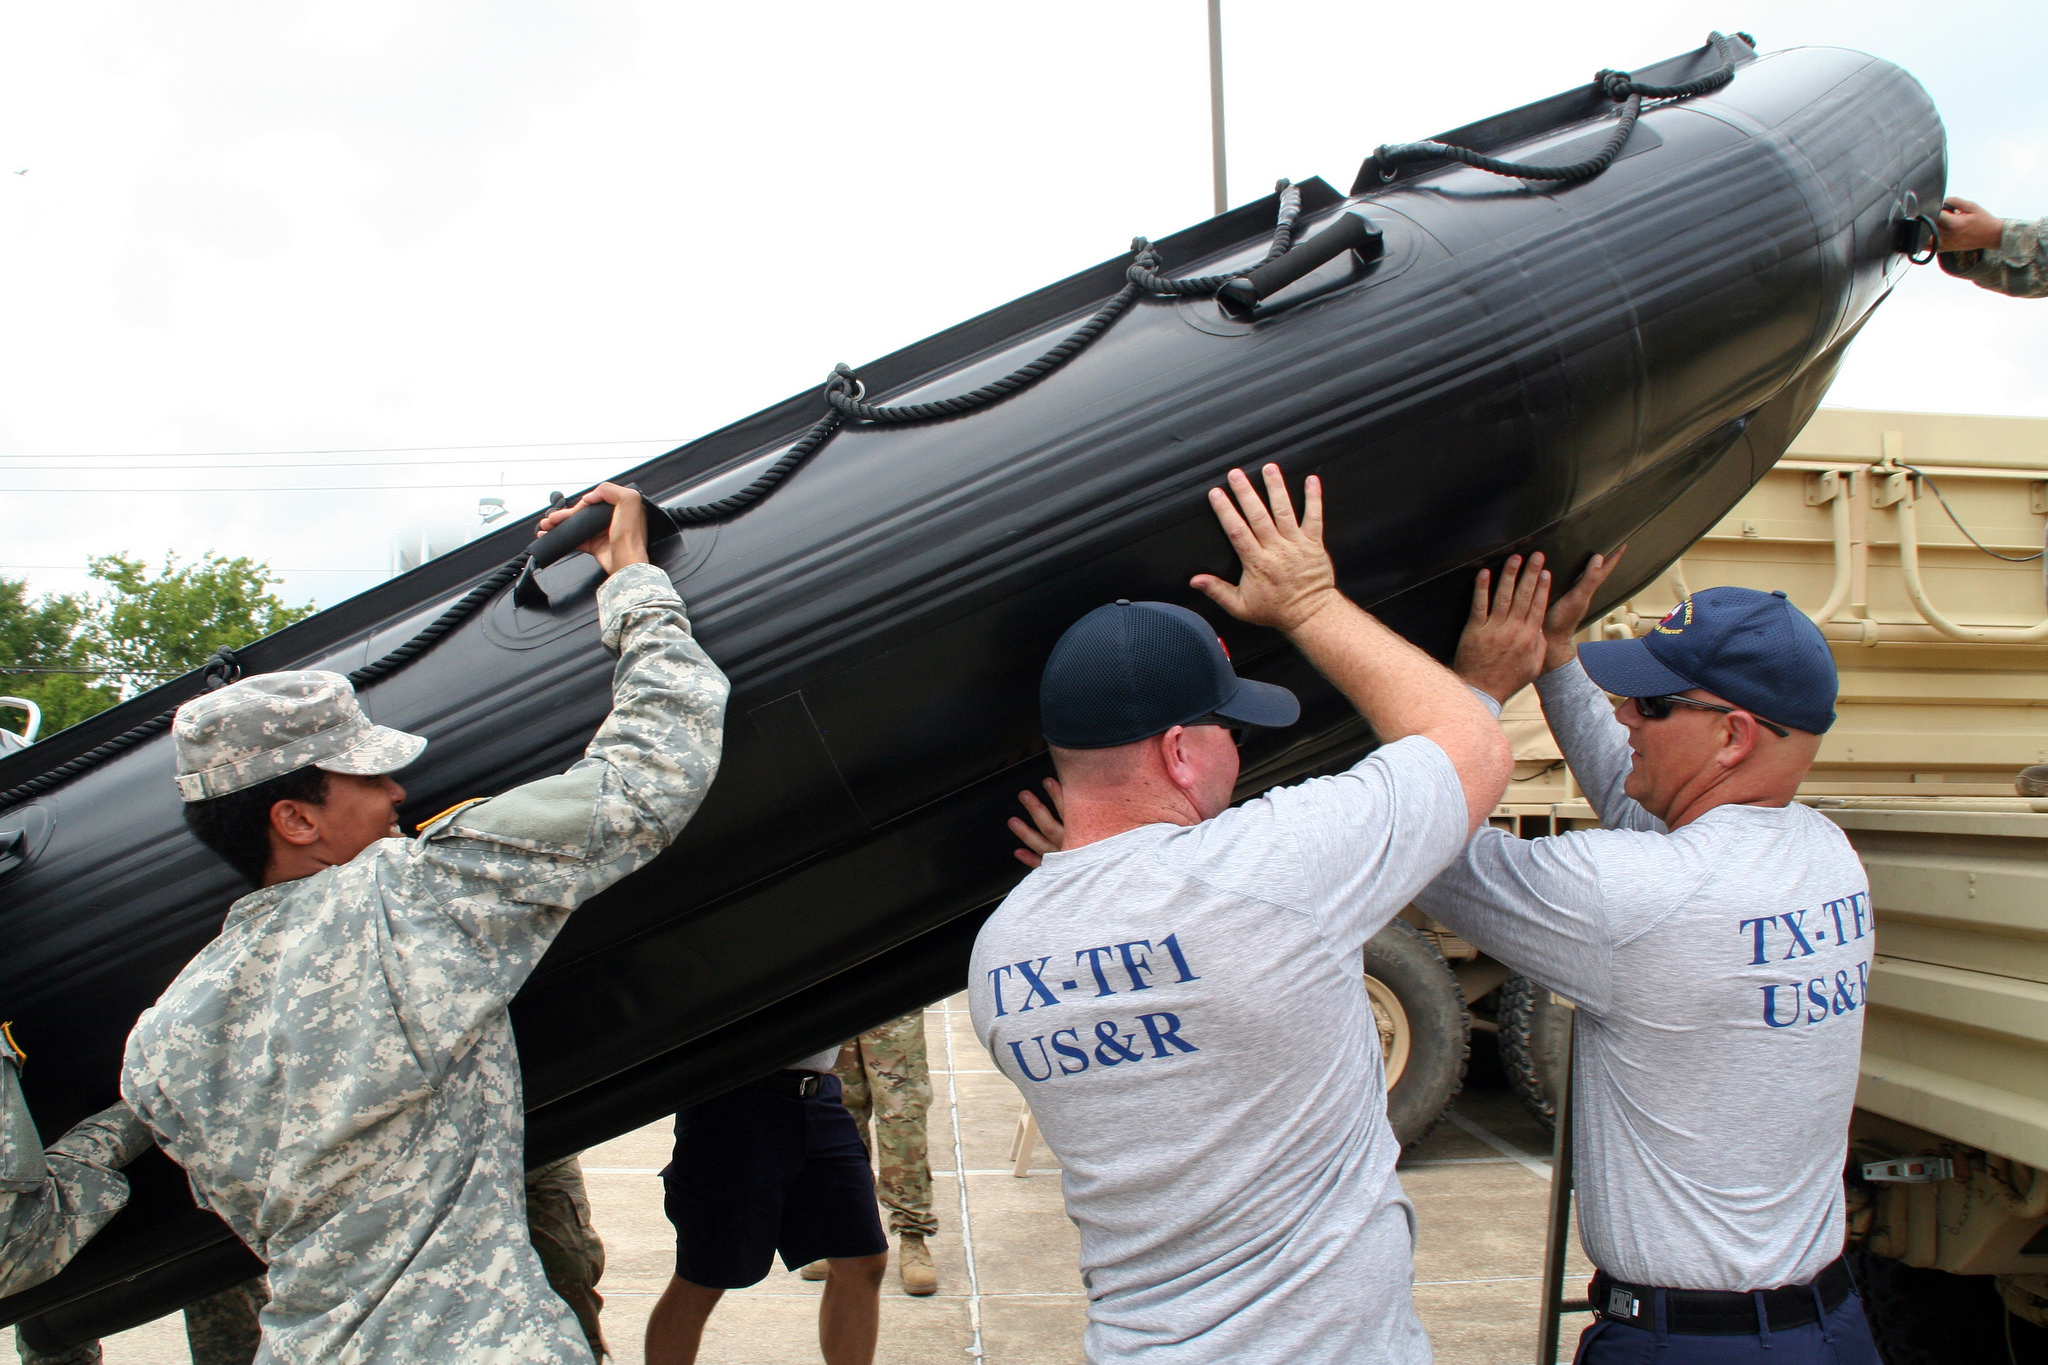 Texas Army National Guard soldiers joined members of a Texas Task Force Ones Swift Water Rescue Team for interoperability training leading up to Hurricane Harvey, in Bryan, Aug. 25, 2017. (Sgt. Steve Johnson/Army)